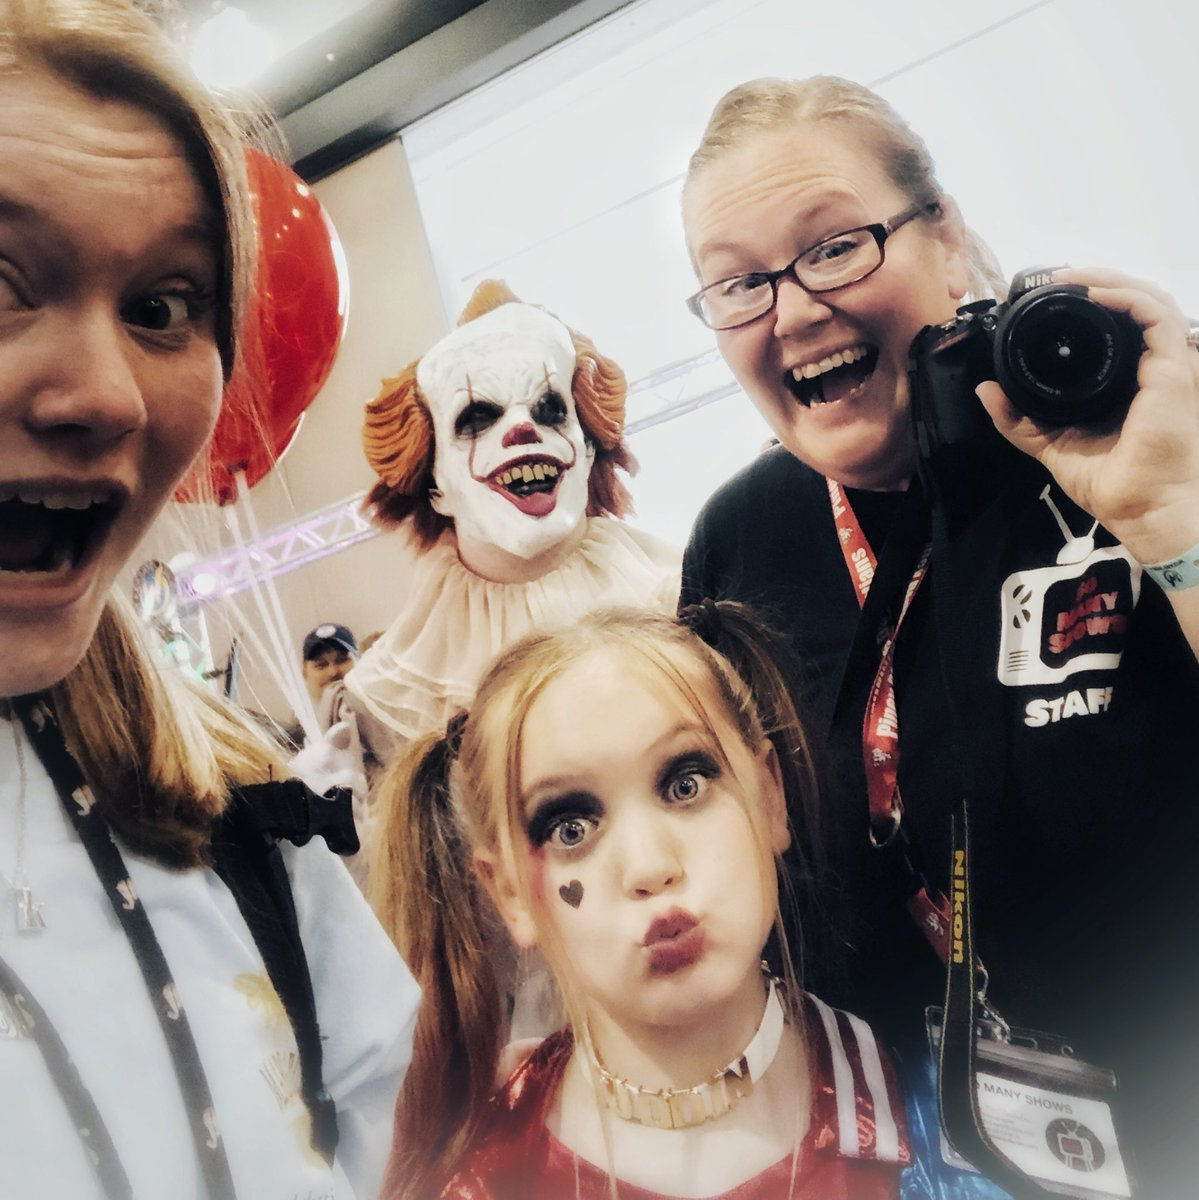 AHHHH Pennywise was creeping on us!! @WizardWorld #wizardworldphiladelphia #WizardWorldComicCon #WizardWorld #Pennywise #clown #scary #Stephenking #it #SoManyShows @So_Many_Shows @JayMcChaos   @trillestkory<br>http://pic.twitter.com/2yHnBEQHo2